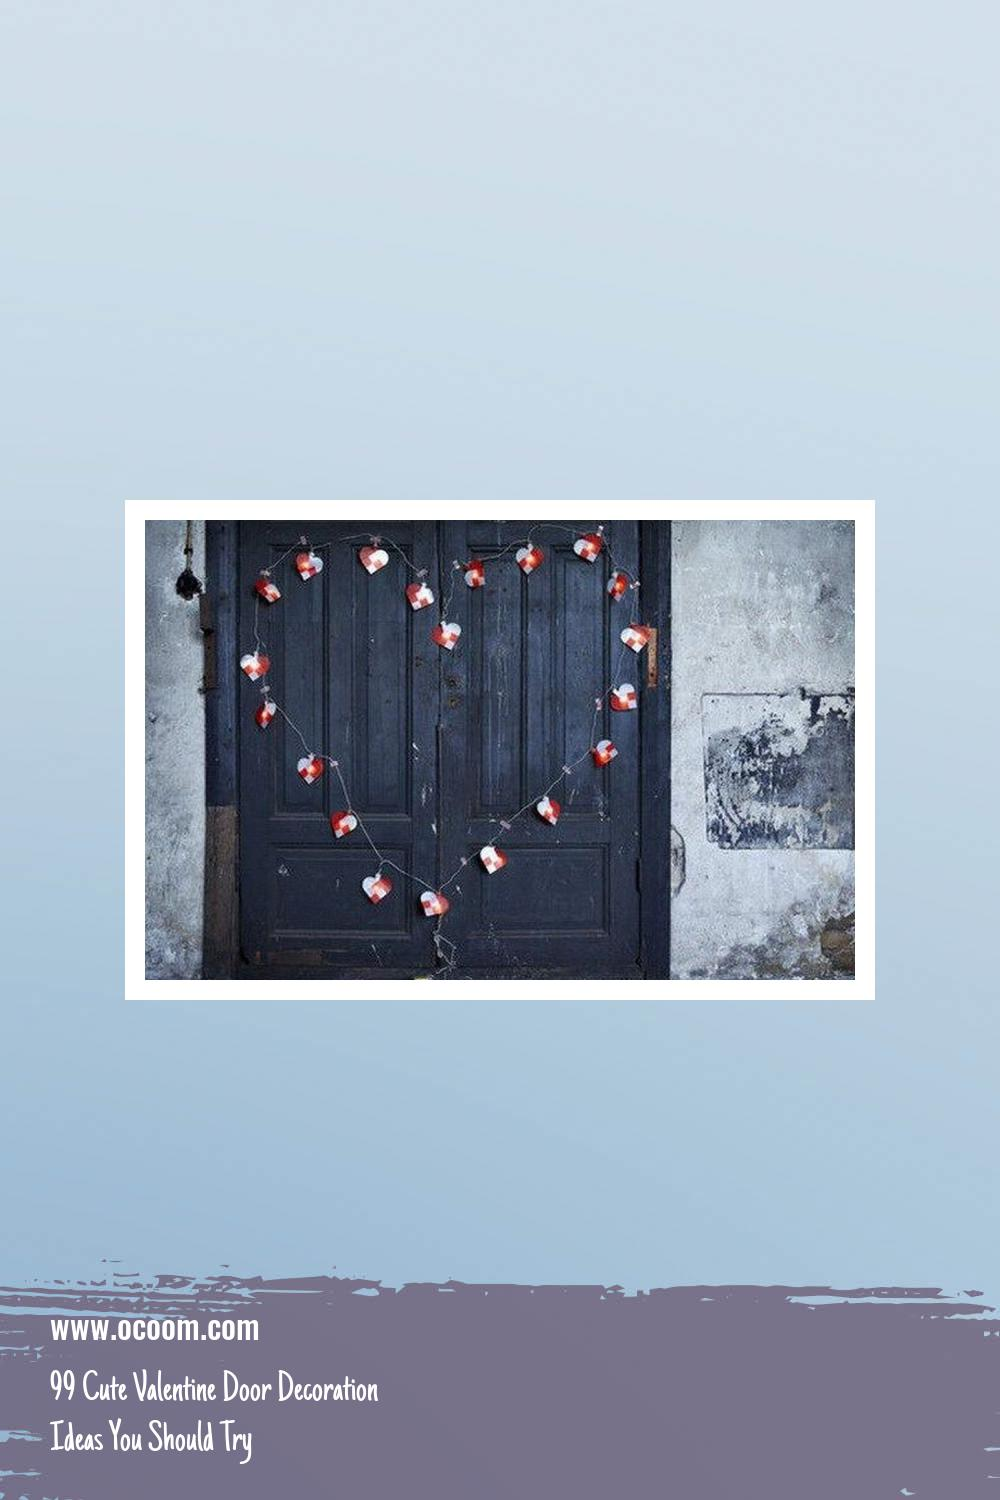 99 Cute Valentine Door Decoration Ideas You Should Try 9